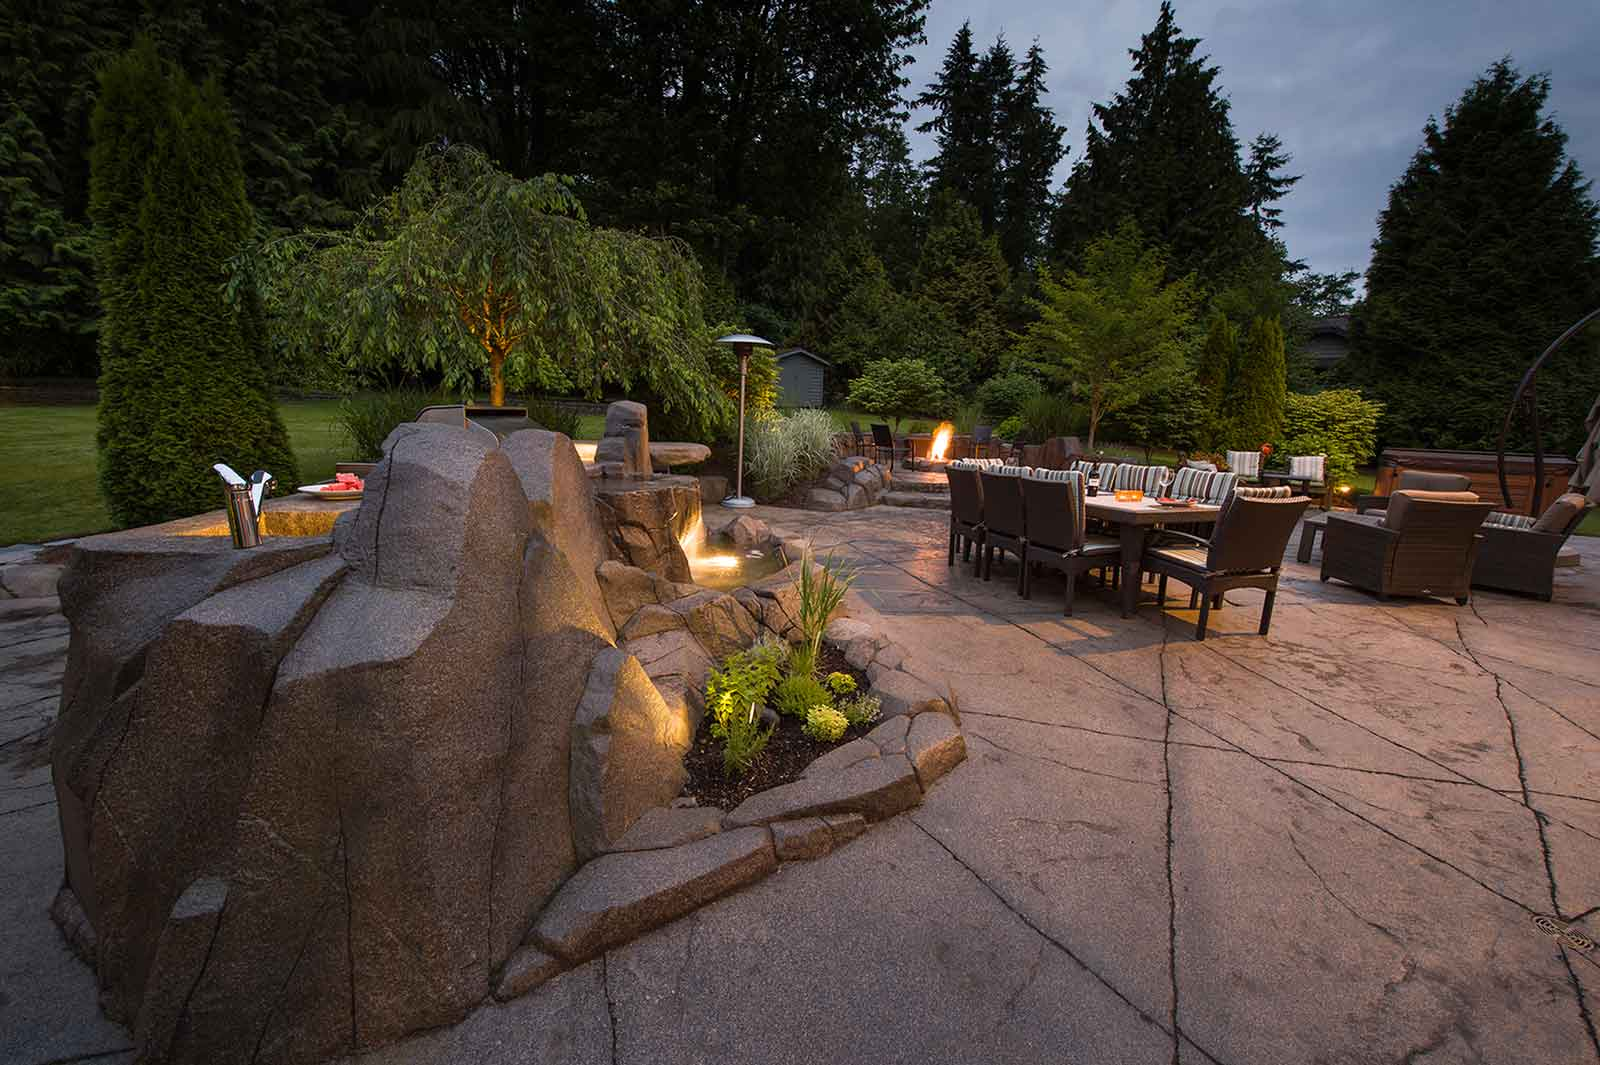 Night time outdoor living space